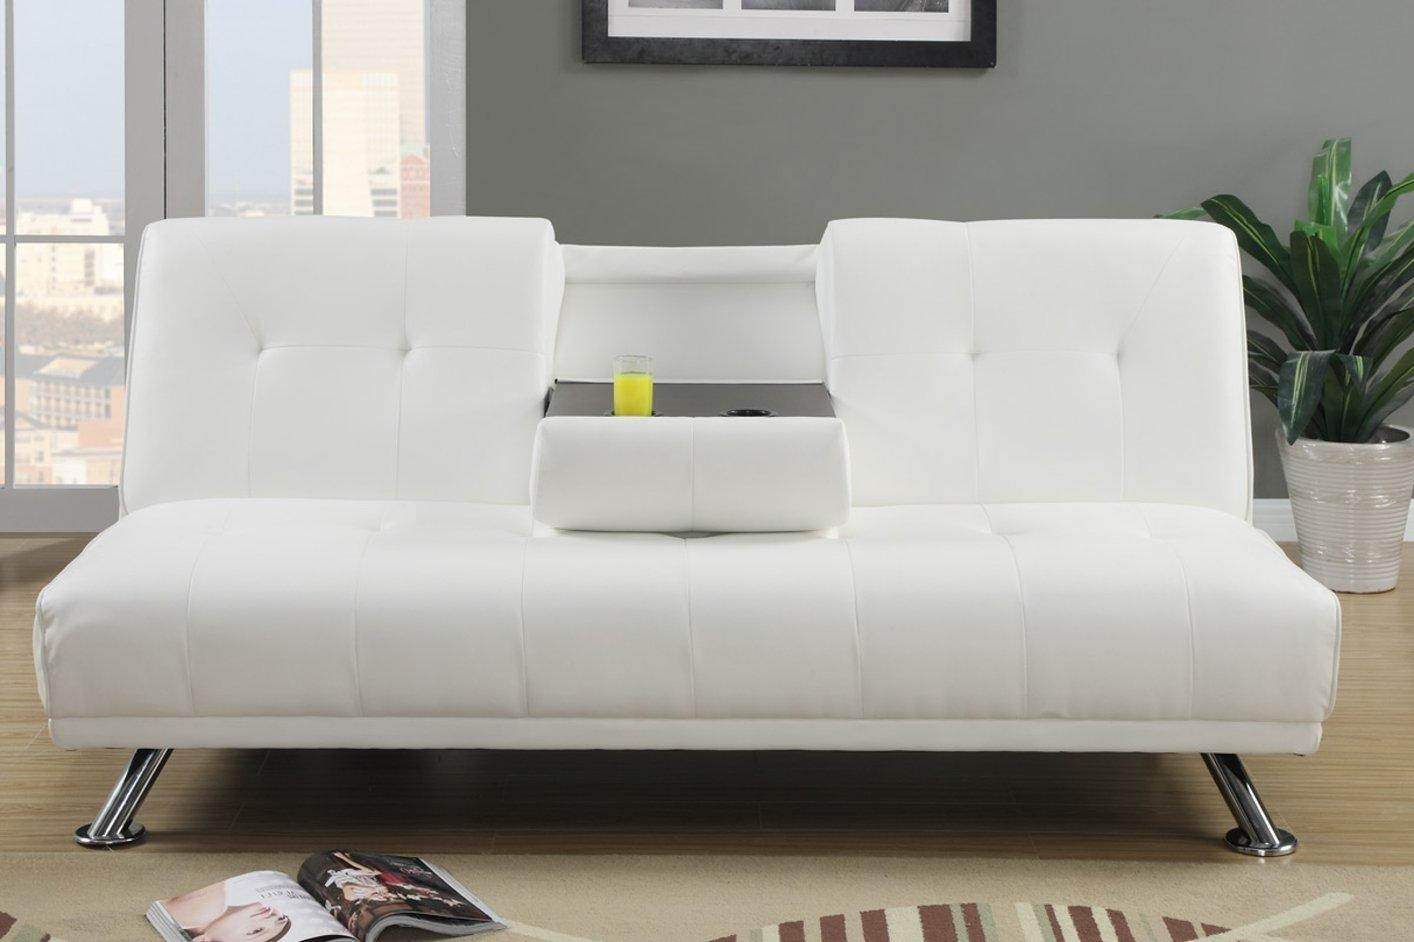 los angeles sectional sofa best italian leather furniture 20 collection of sleeper sofas ideas